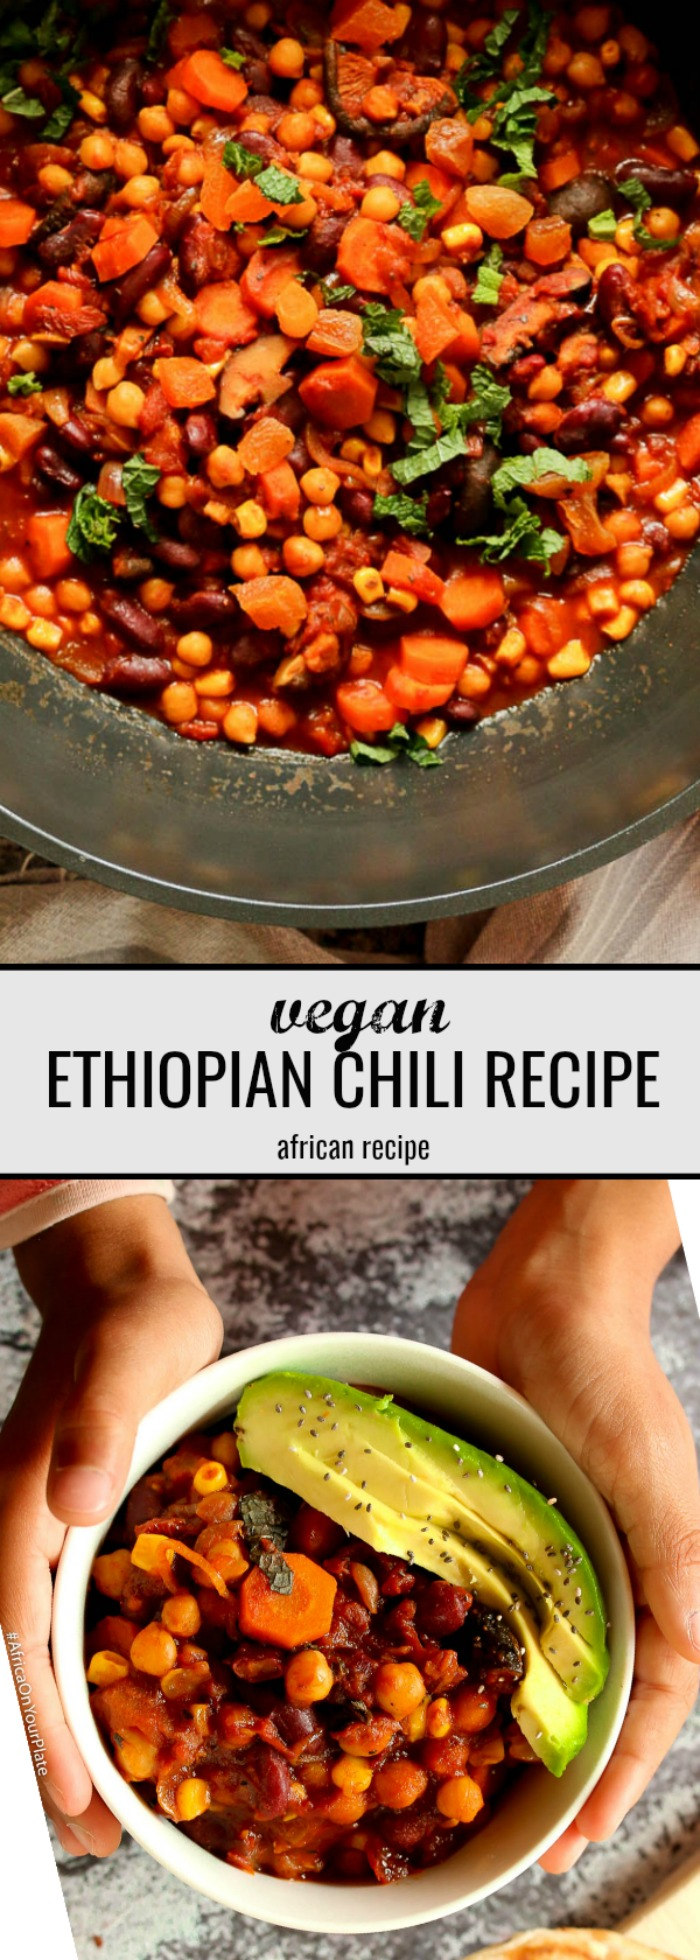 This vegan chili recipe is hearty, and filling. With a mix of chickpeas (garbanzo beans), beans, sweet corn, and Ethiopian spices, this vegan African chili is easy to make, bursting with flavours and nutrients and a secret umami ingredient.